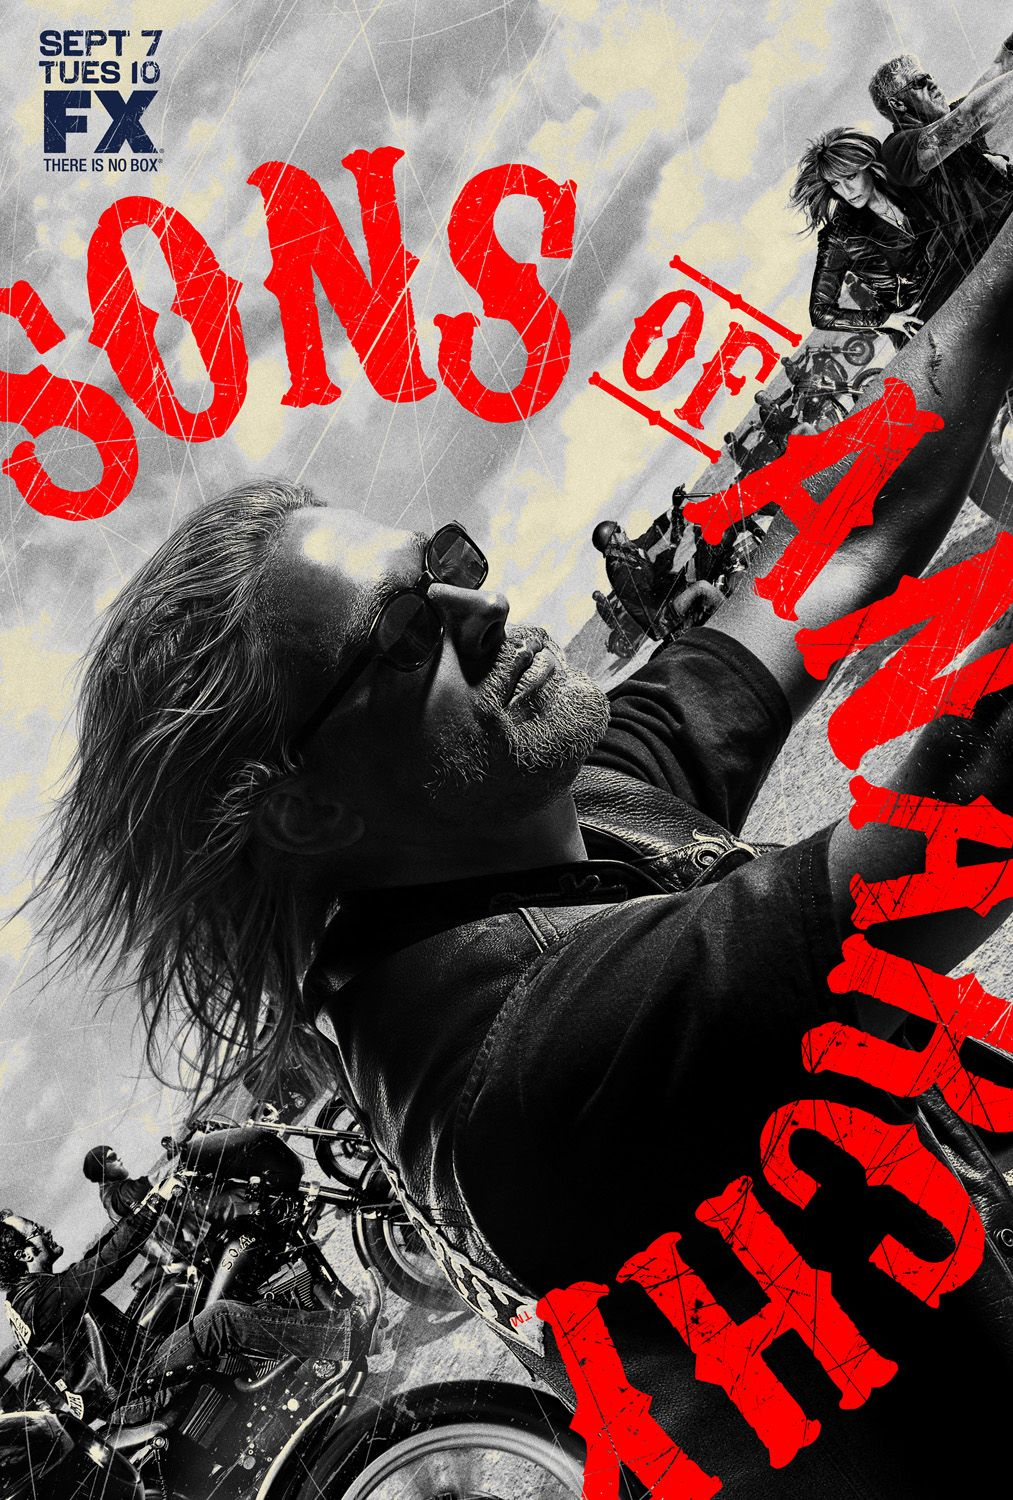 Sons of Anarchy (TV Series) 1 2 3 4 5 6 7 8 9 10